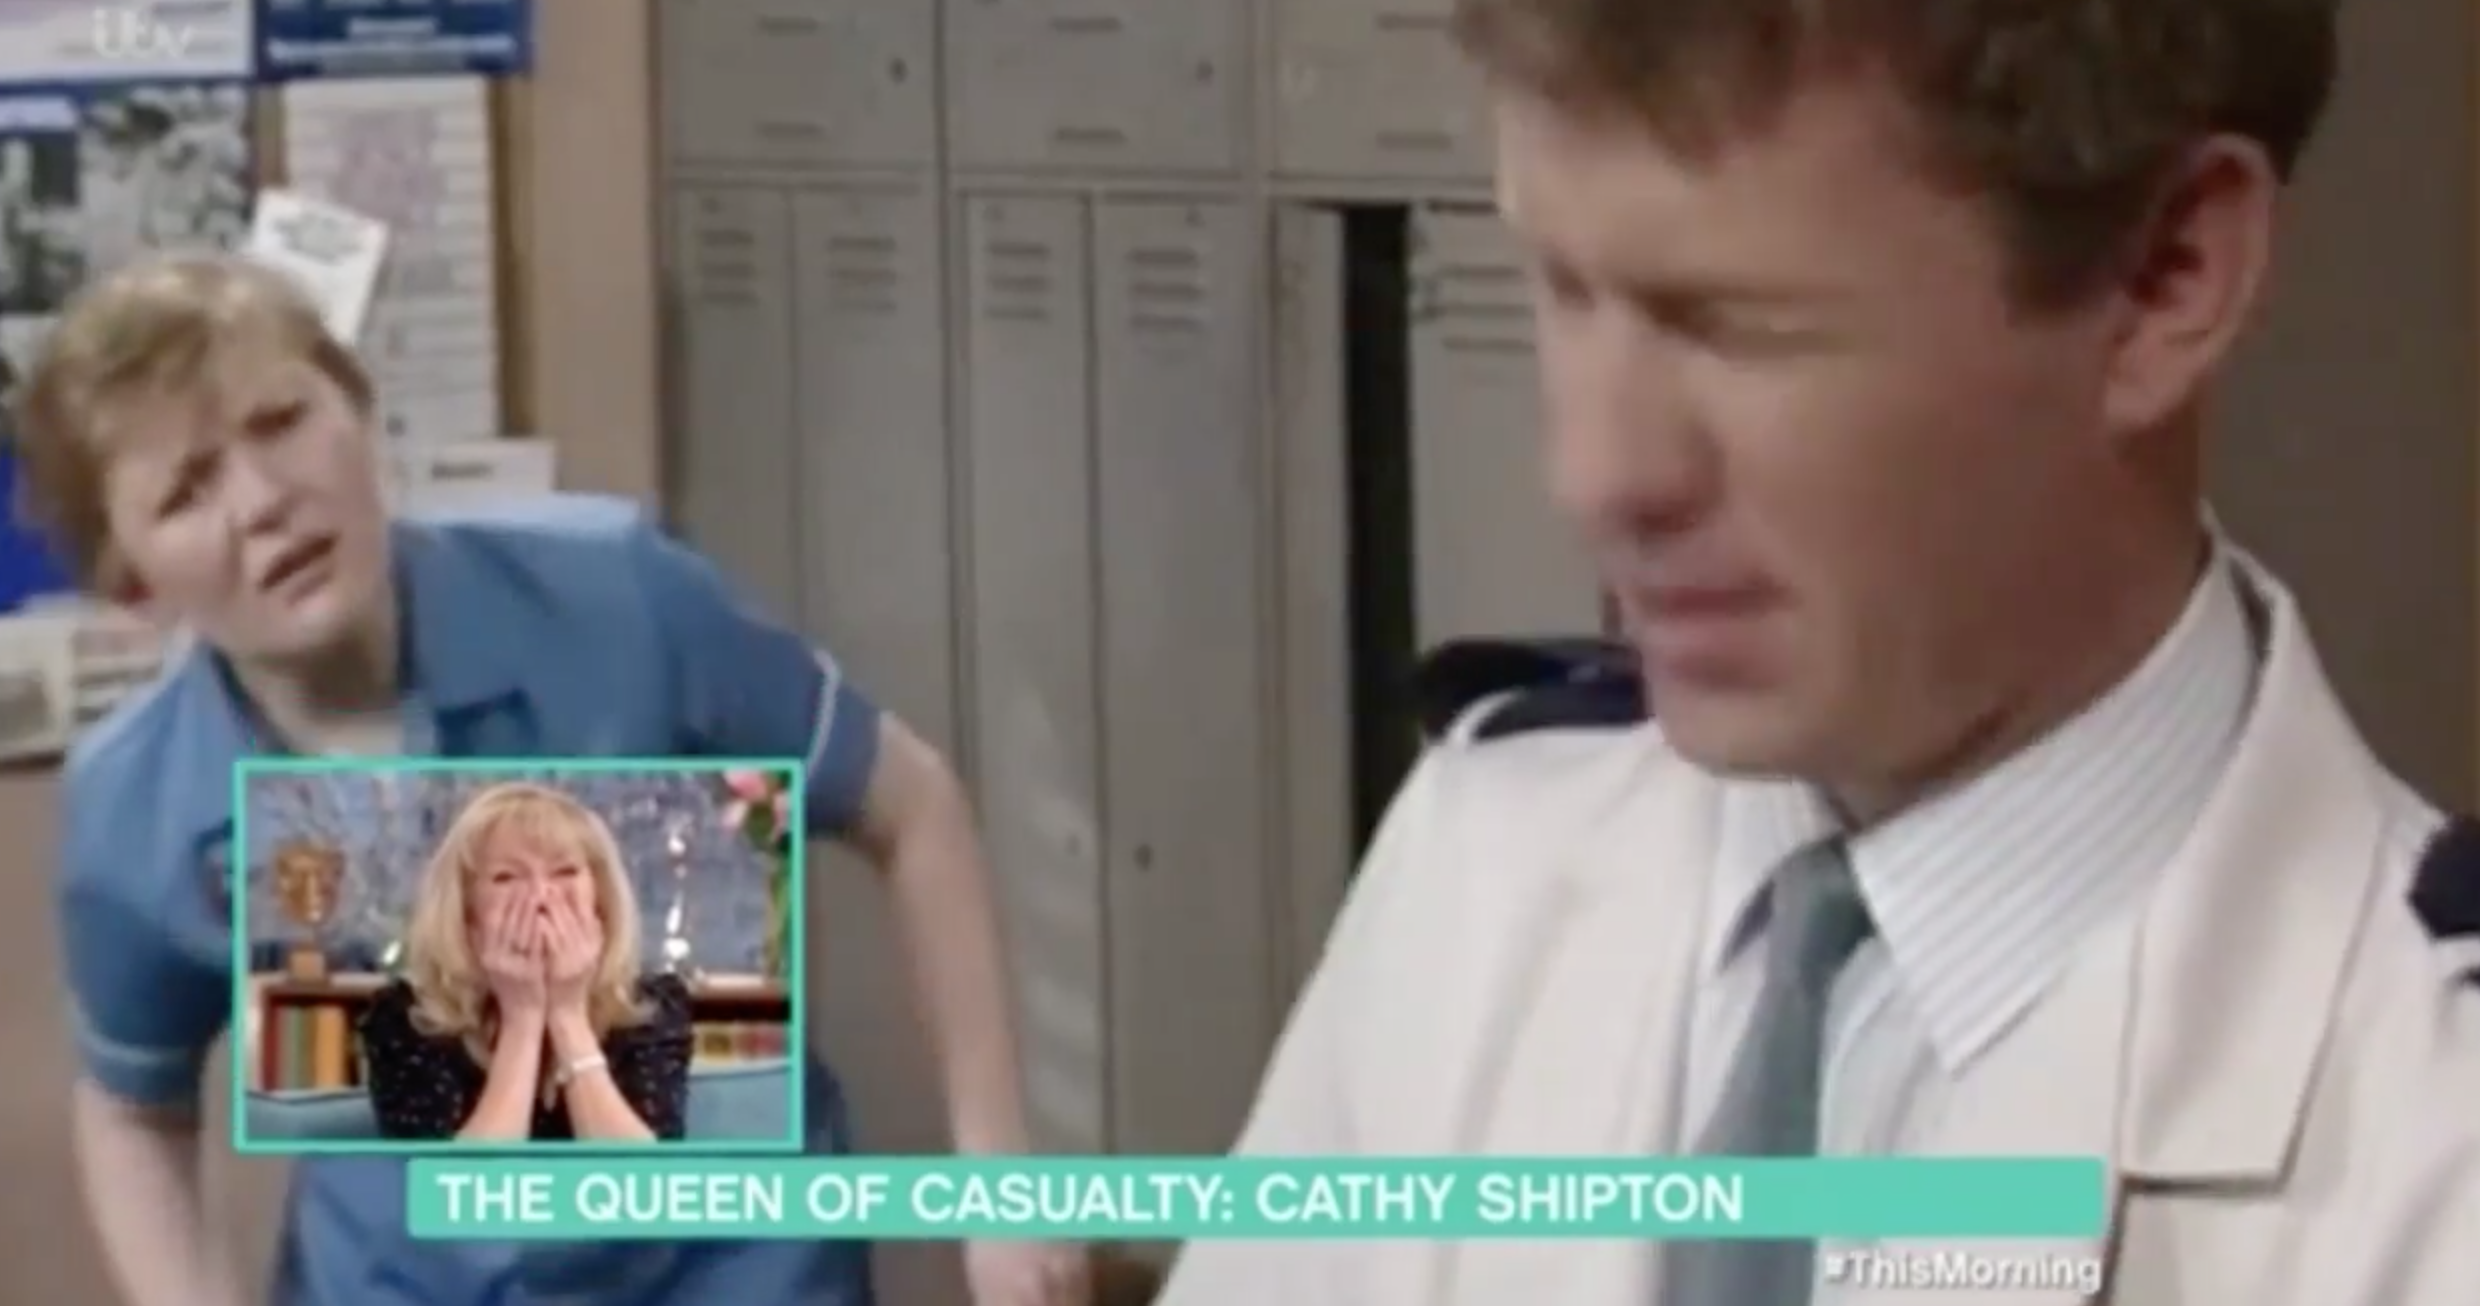 First episode of Casualty Cathy Shipton appeared in